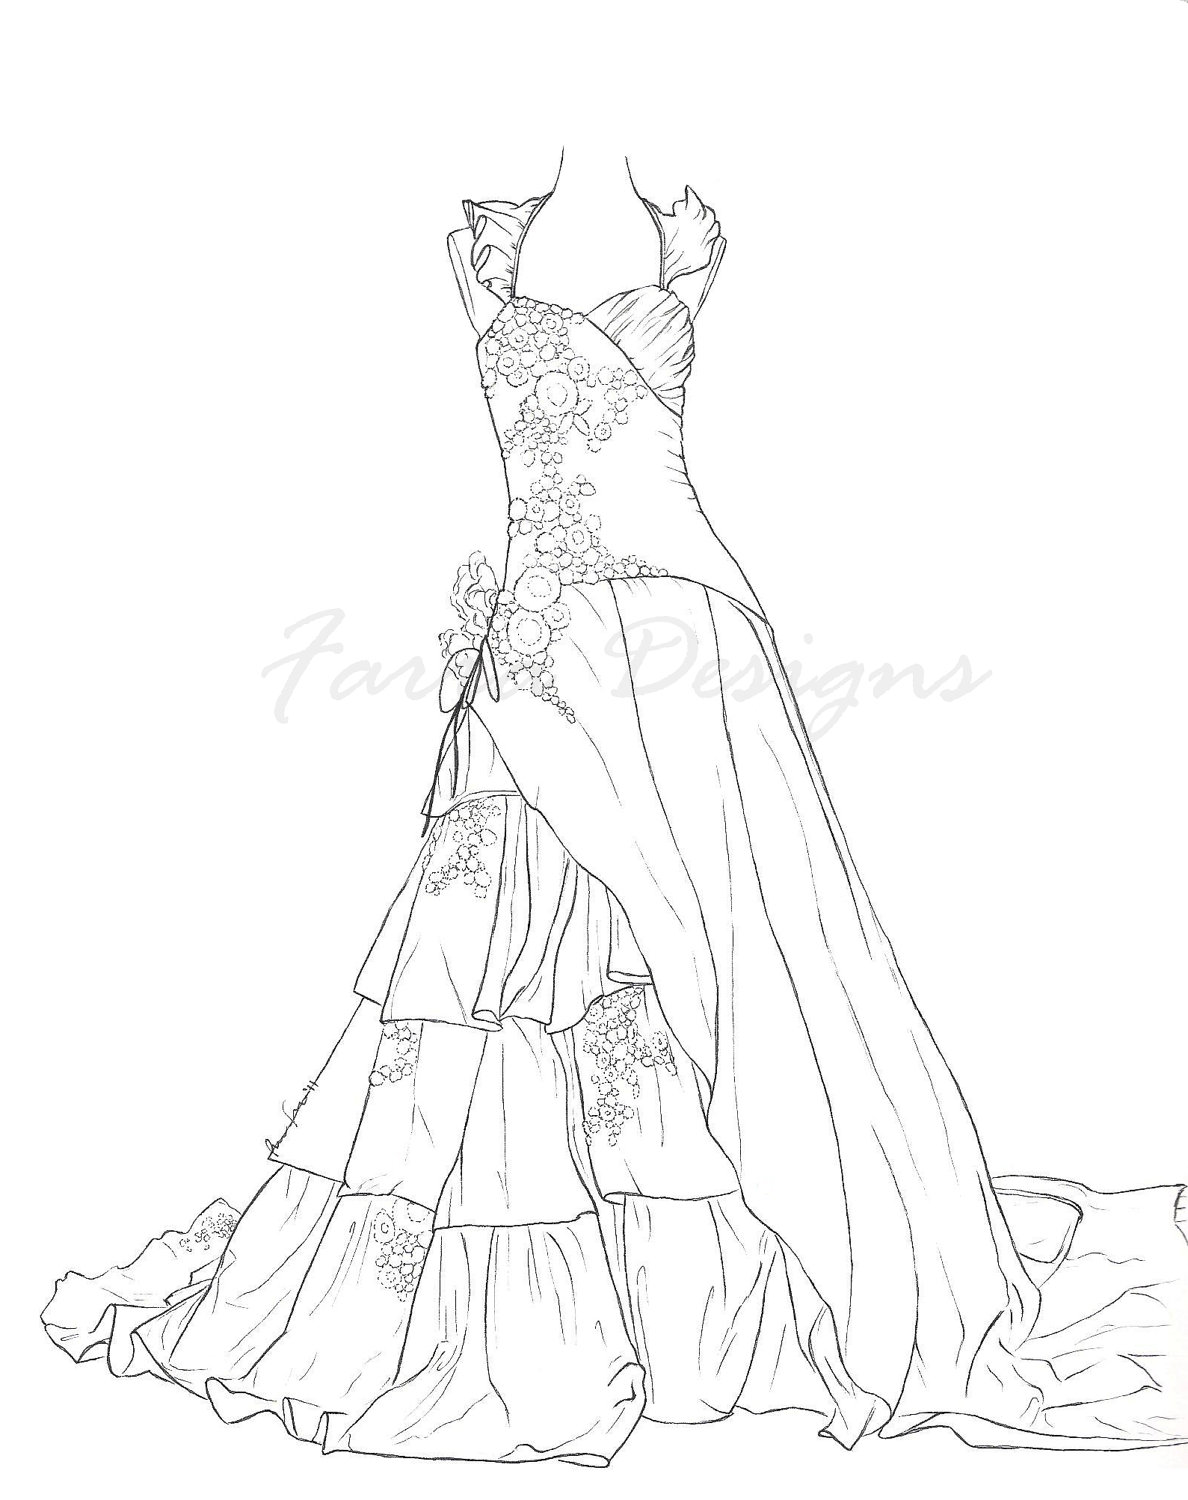 Barbie_Night_Dress_Coloring_01